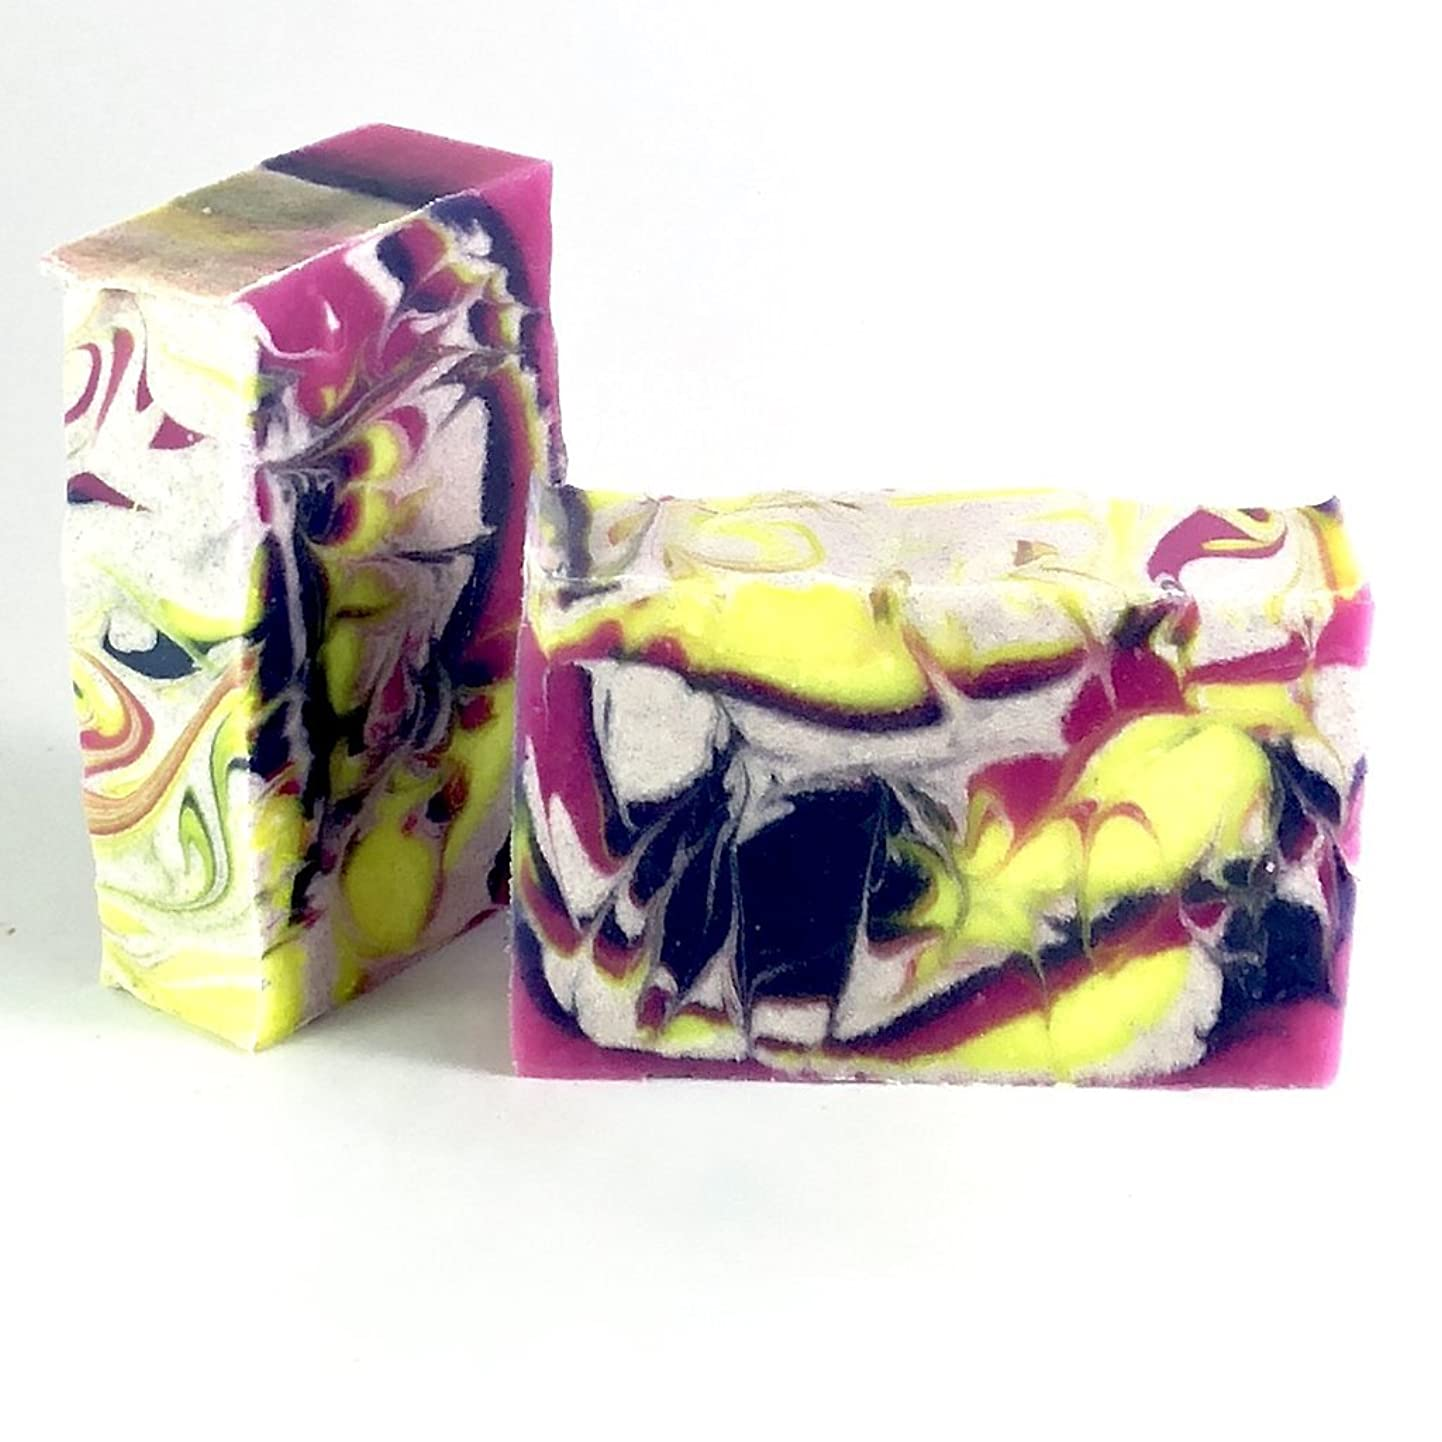 Flash Dancer Artisan Soap - Handmade Soap that Smells Like Dancing - Body Soap for skin and face - 80's inspired - men's and women's soap lzaavxursvt6